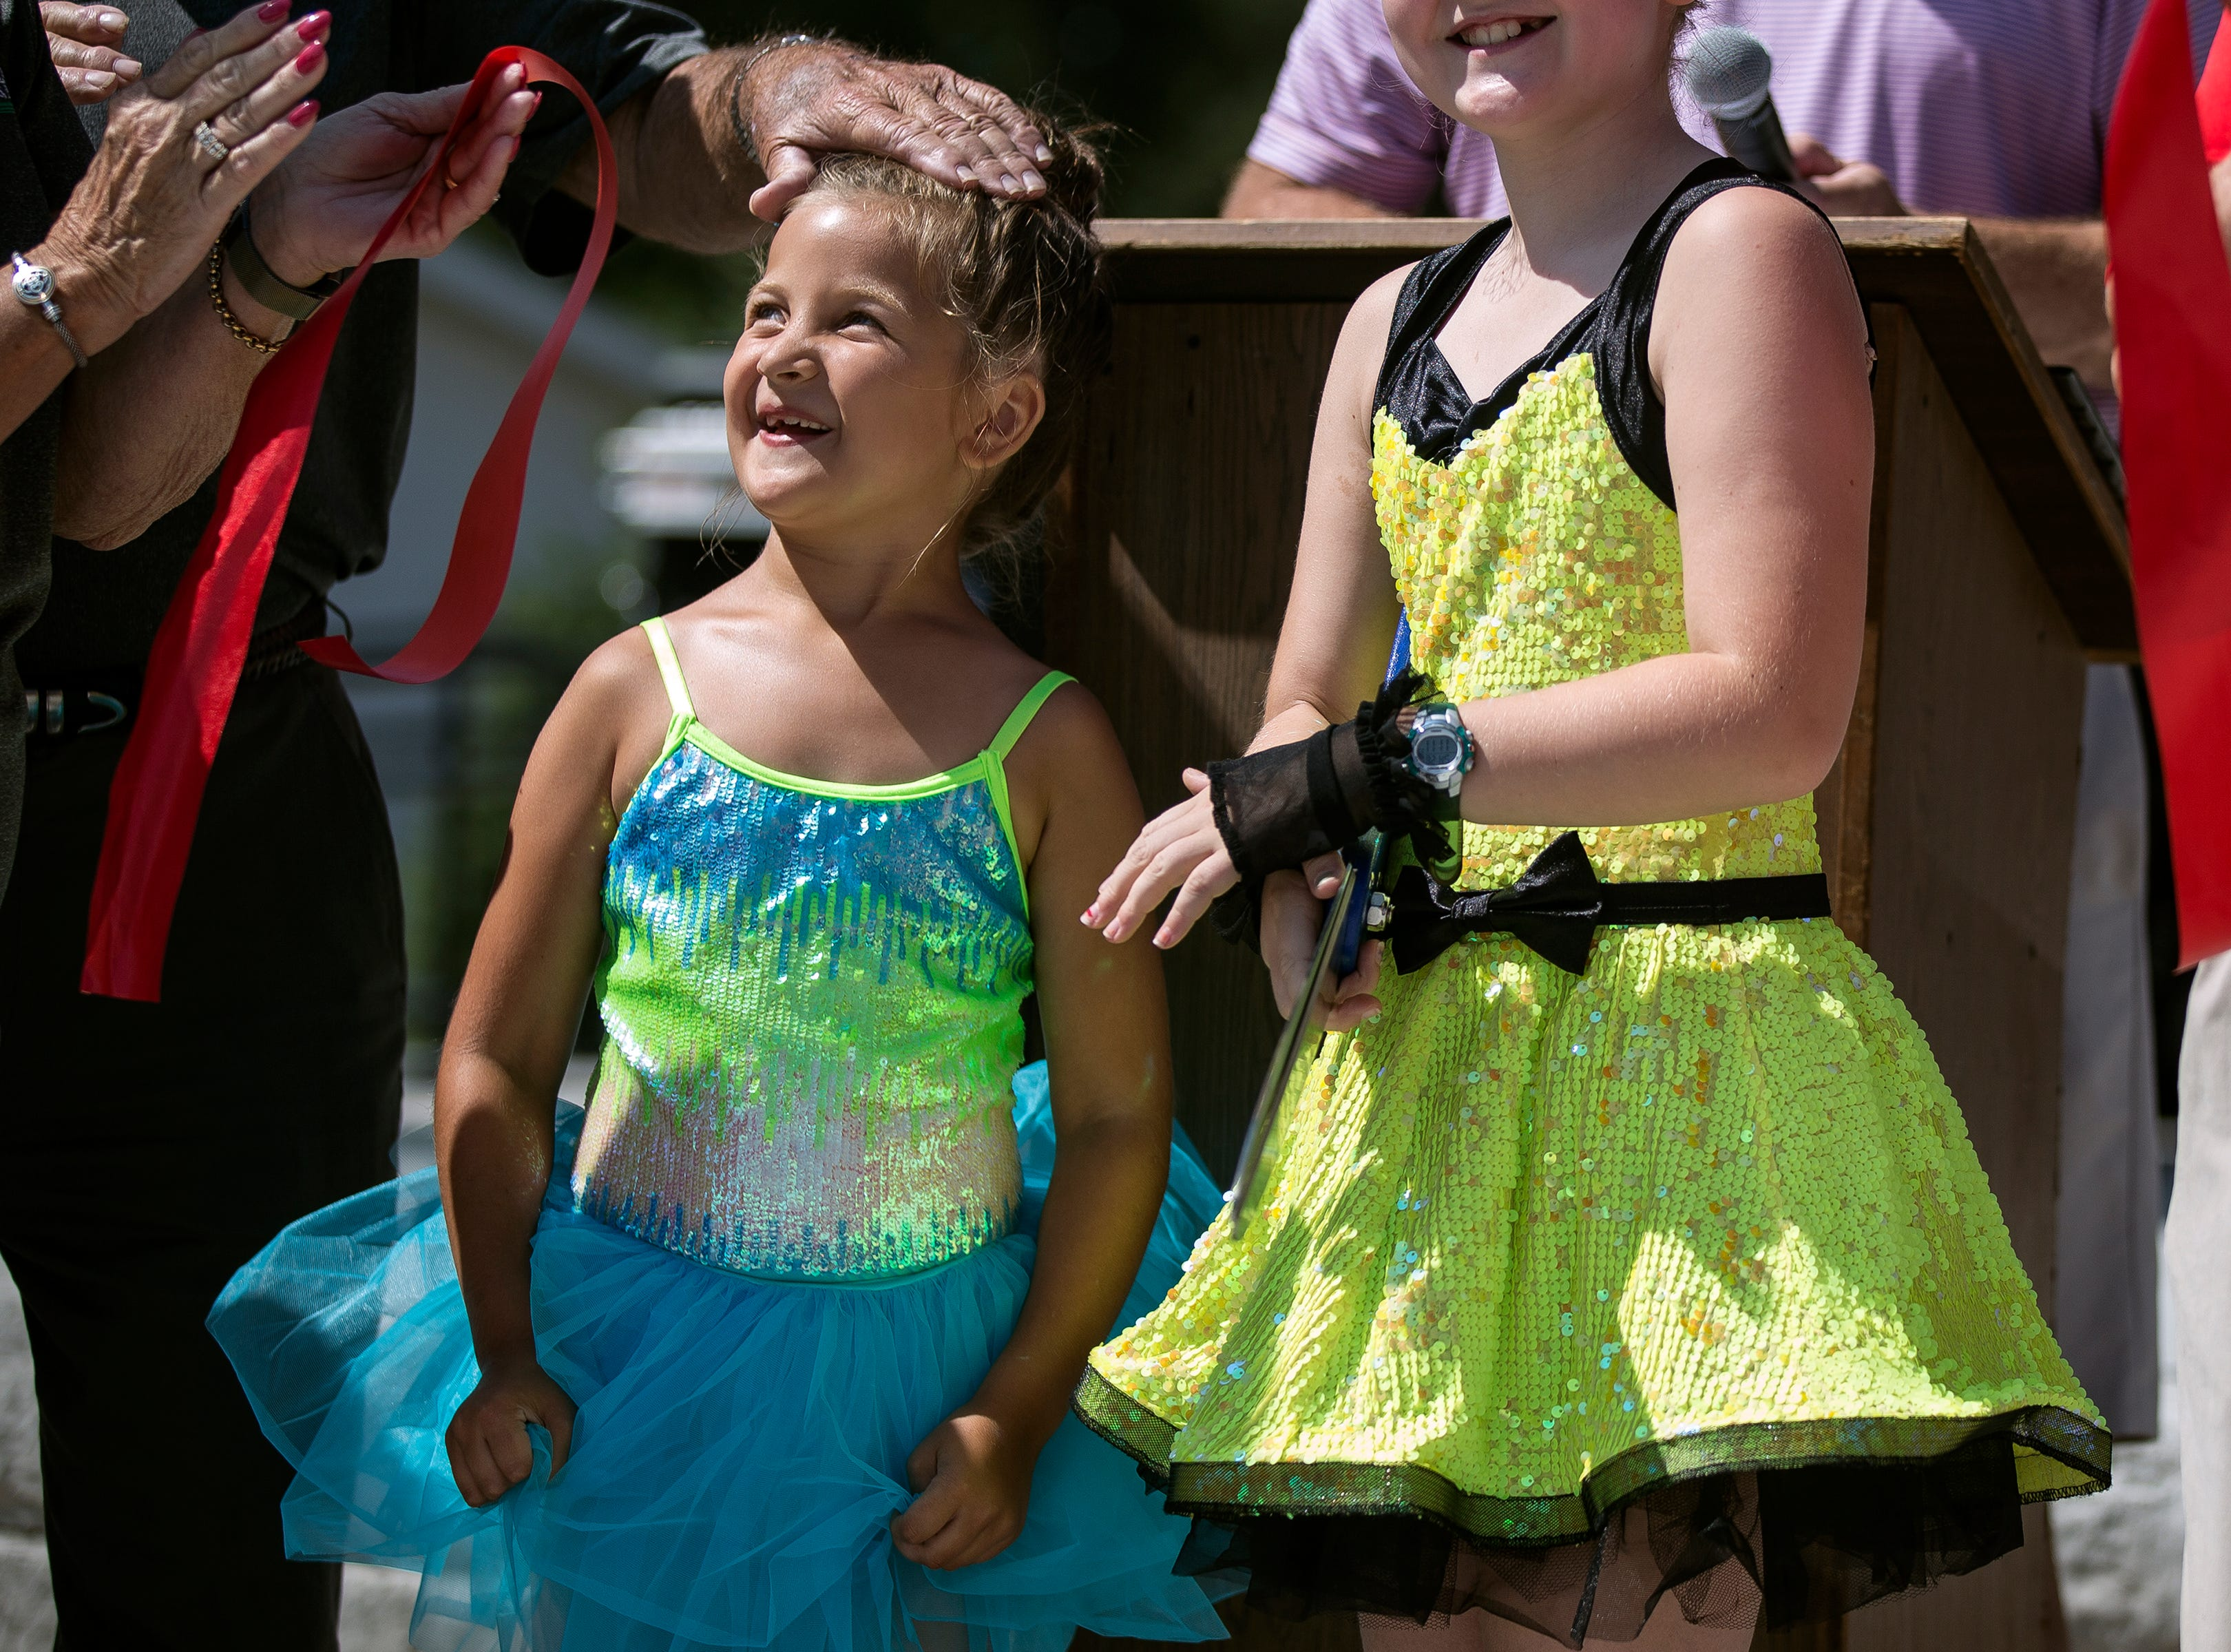 Members of the Dance Dynamics cut the ribbon during a ceremony for the new Band Shell at Lake Pacawa during Celebrate Plover at Lake Pacawa Park in Plover, Wis., July 28, 2018.